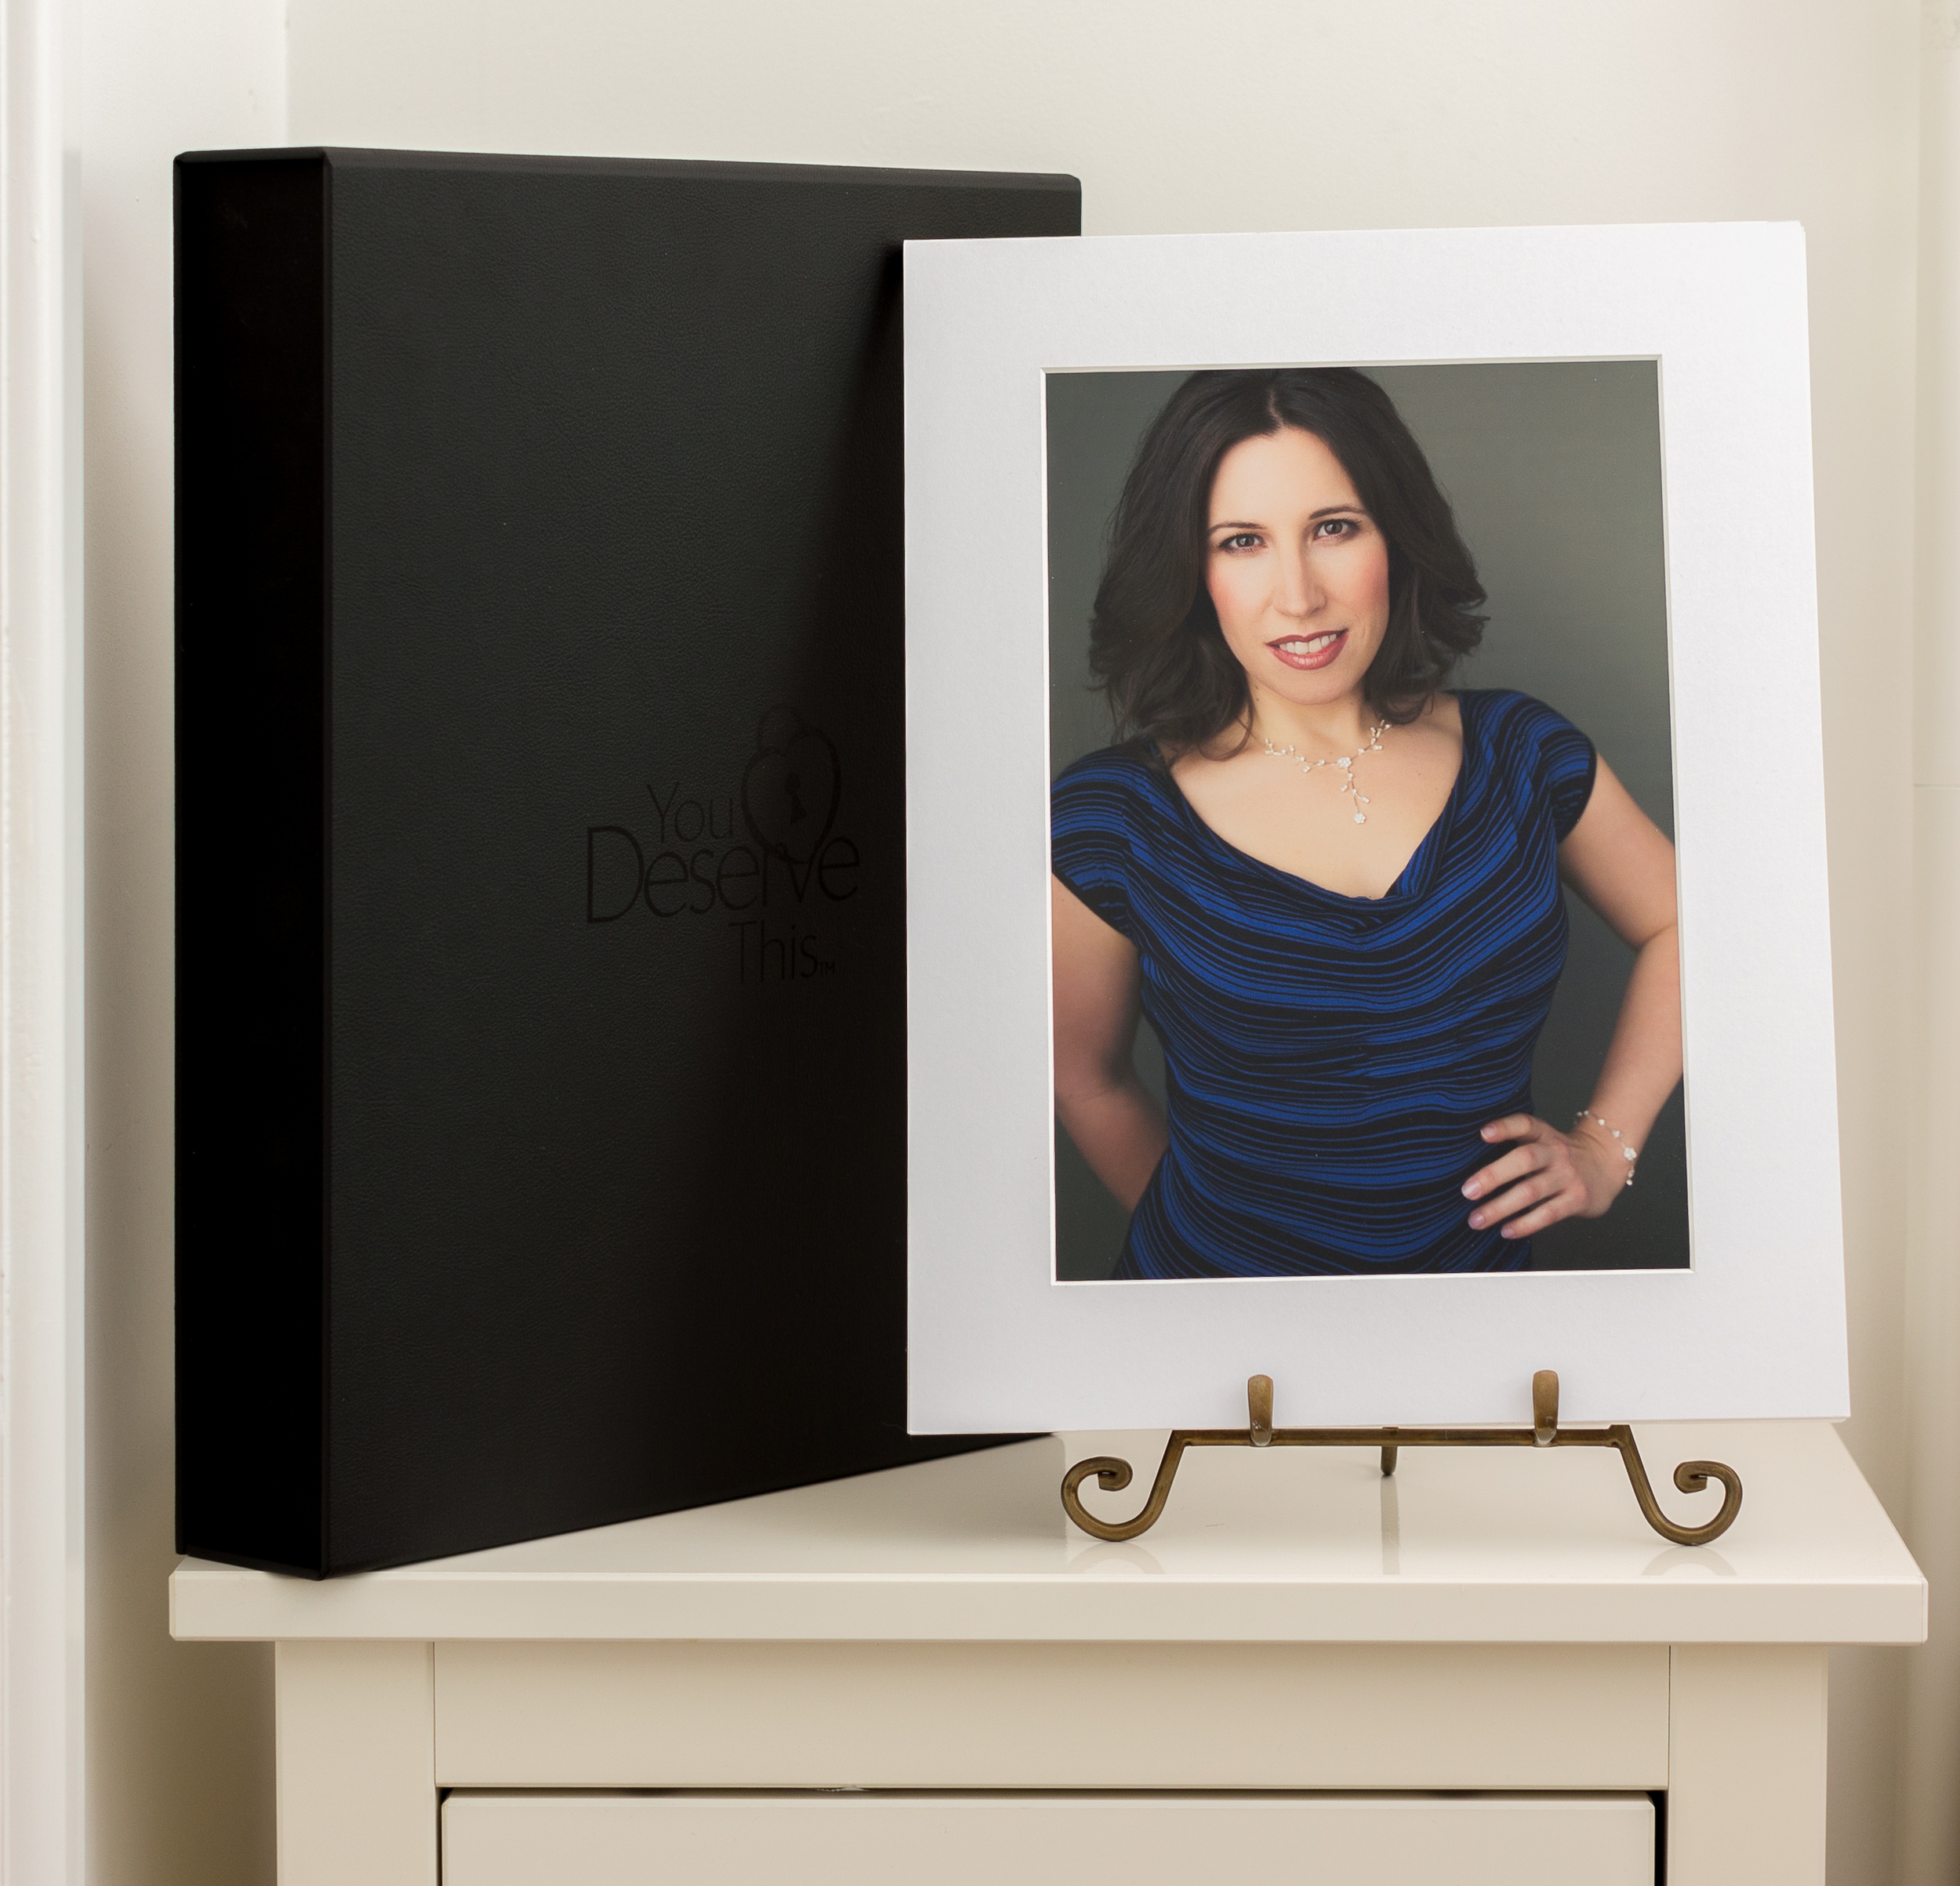 Gorgeous Folio Keepsake Box, included with our Print Packages - with mounted and matted photographs to treasure  www.youdeservethis.com